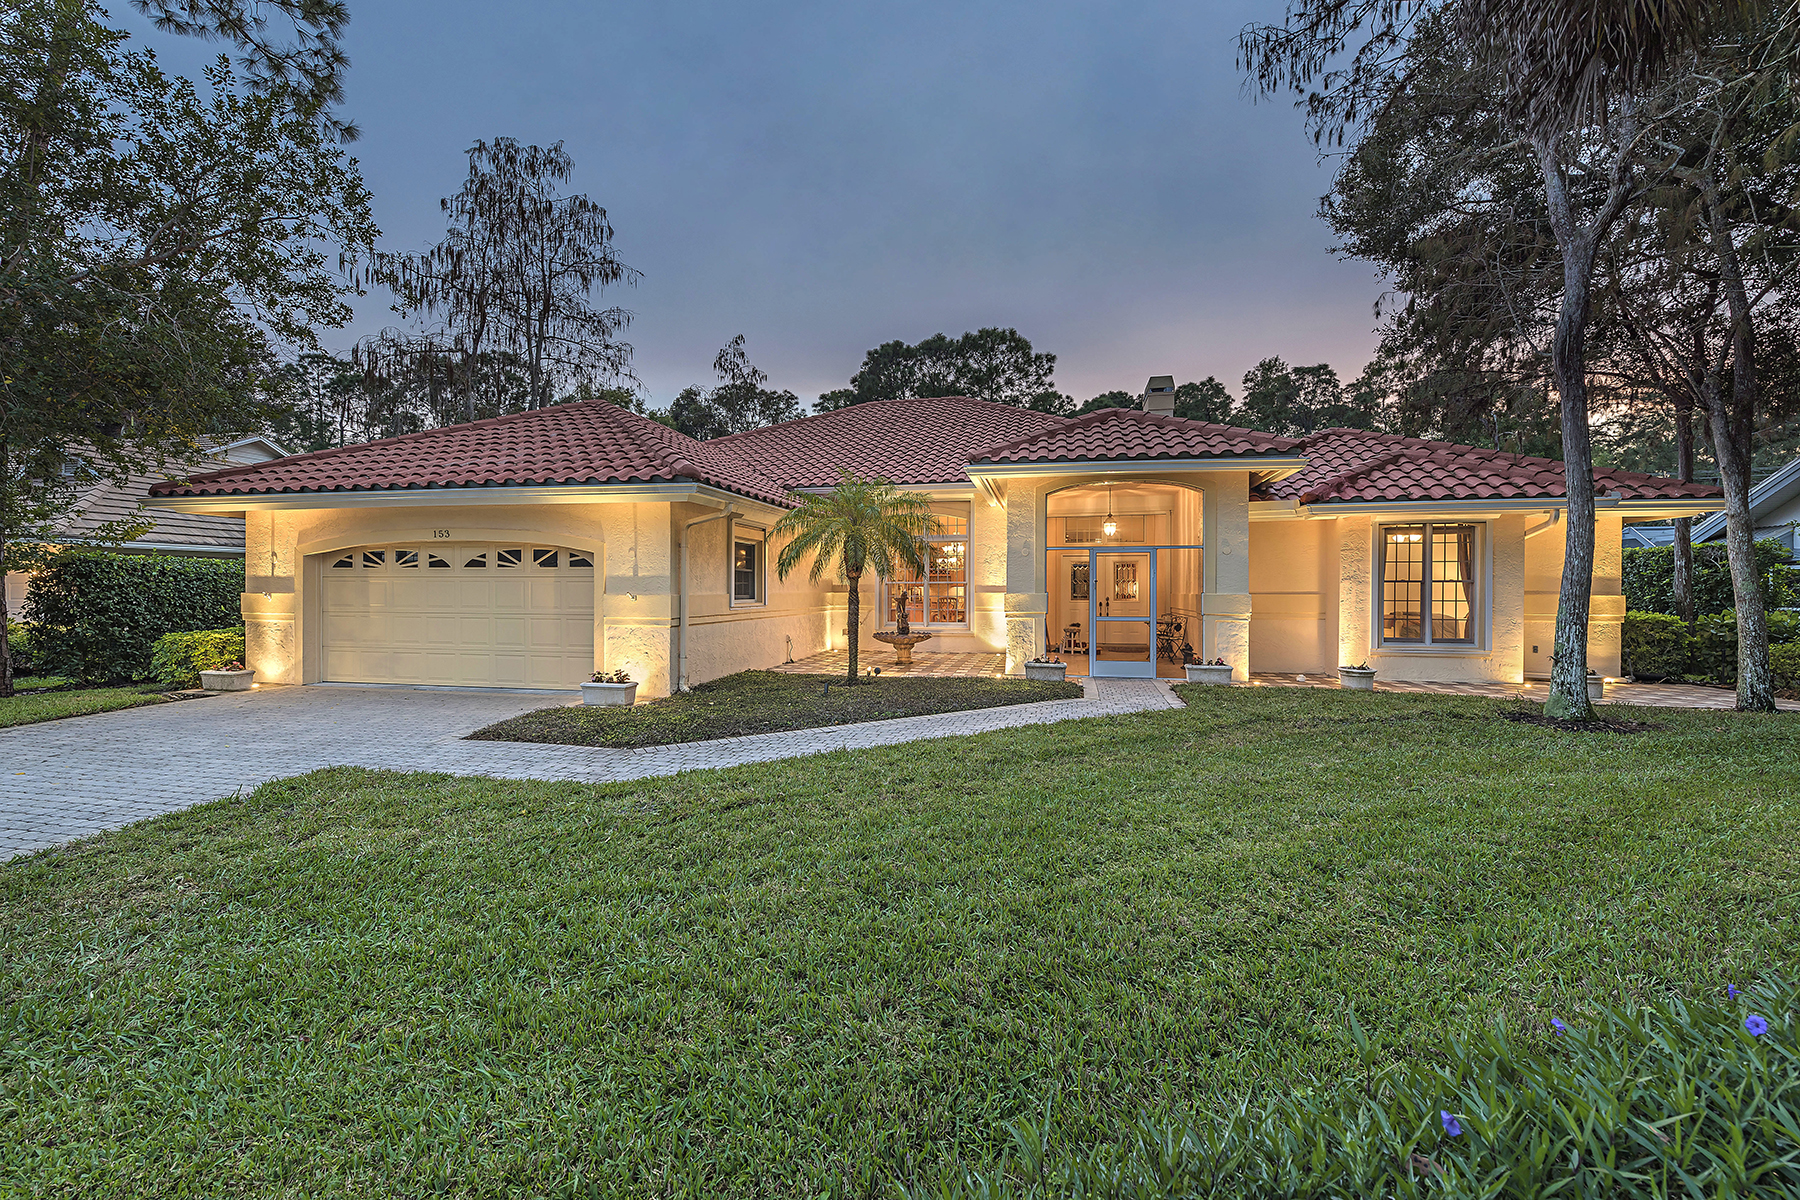 Single Family Home for Sale at WYNDEMERE - LODGINGS 153 Edgemere Way S Naples, Florida, 34105 United States